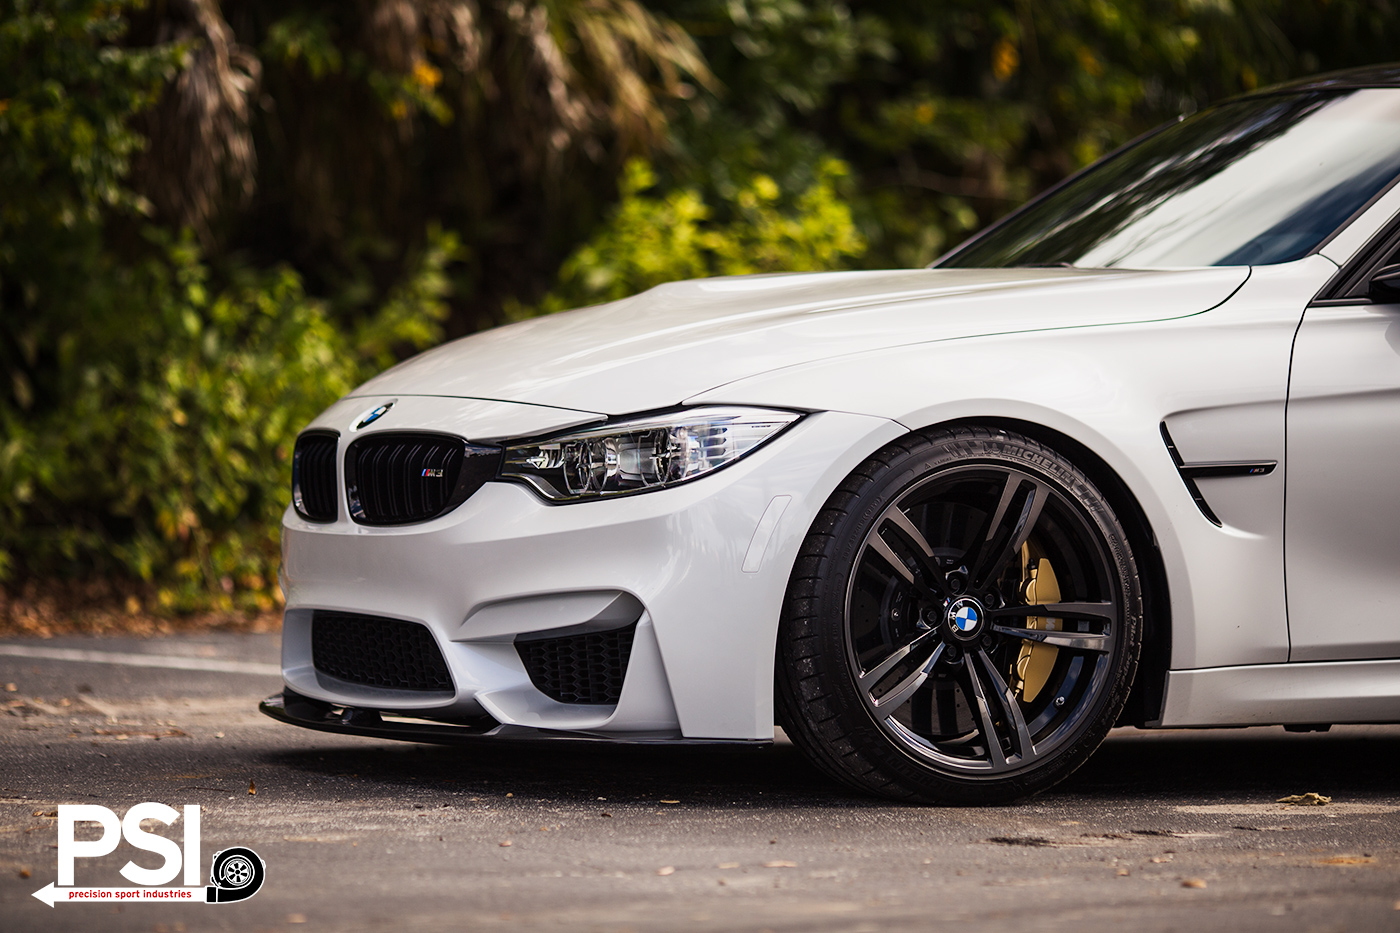 Mineral White Bmw M3 Sedan With Carbon Fiber Goodies